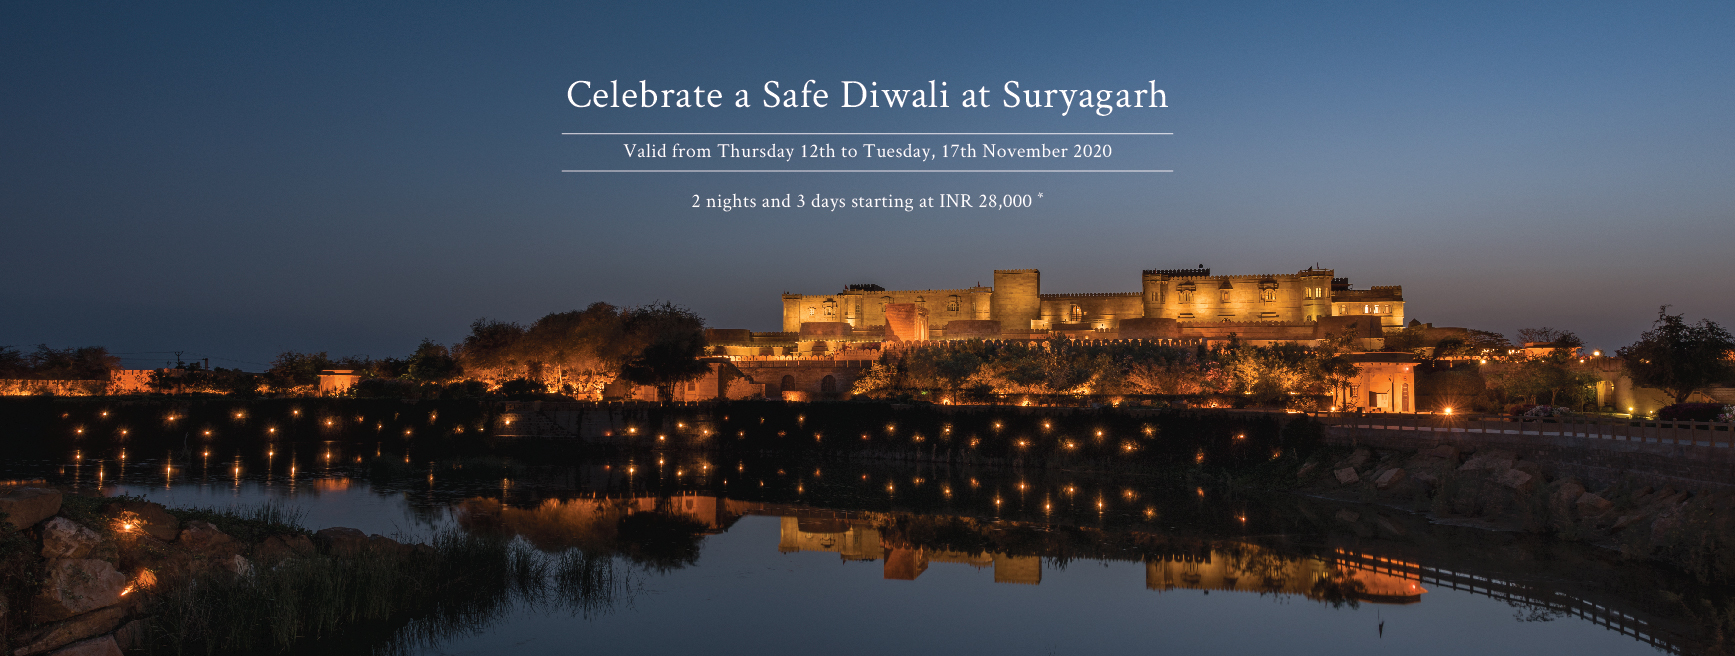 Suryagarh_Diwali 2020_Final_FB Cover-Event Photo